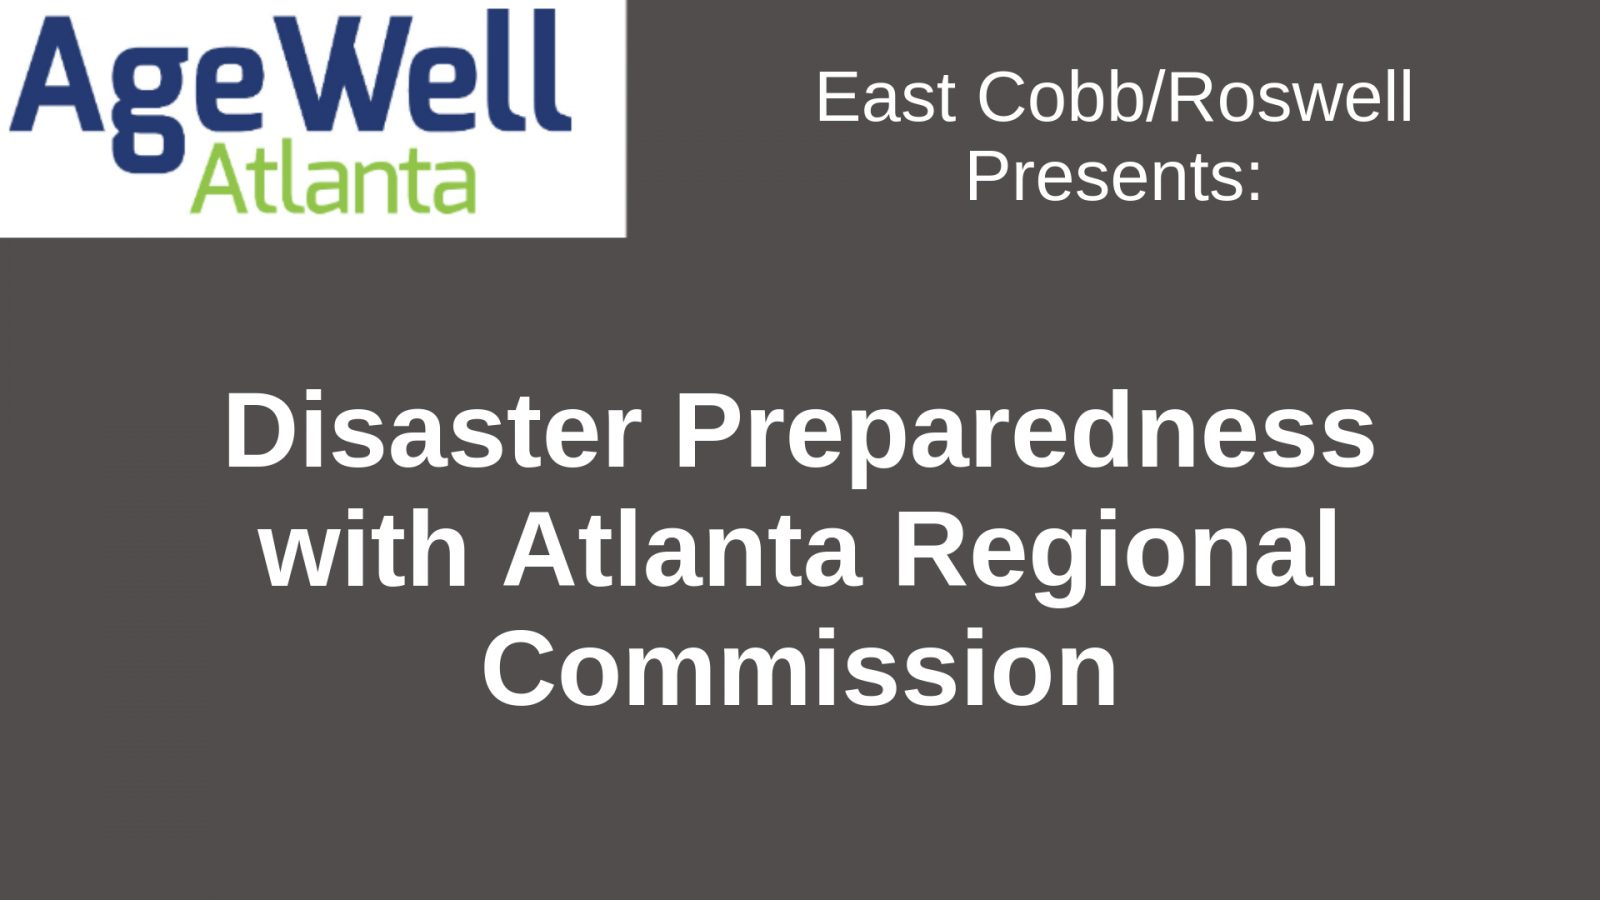 Disaster Preparedness with Atlanta Regional Commission